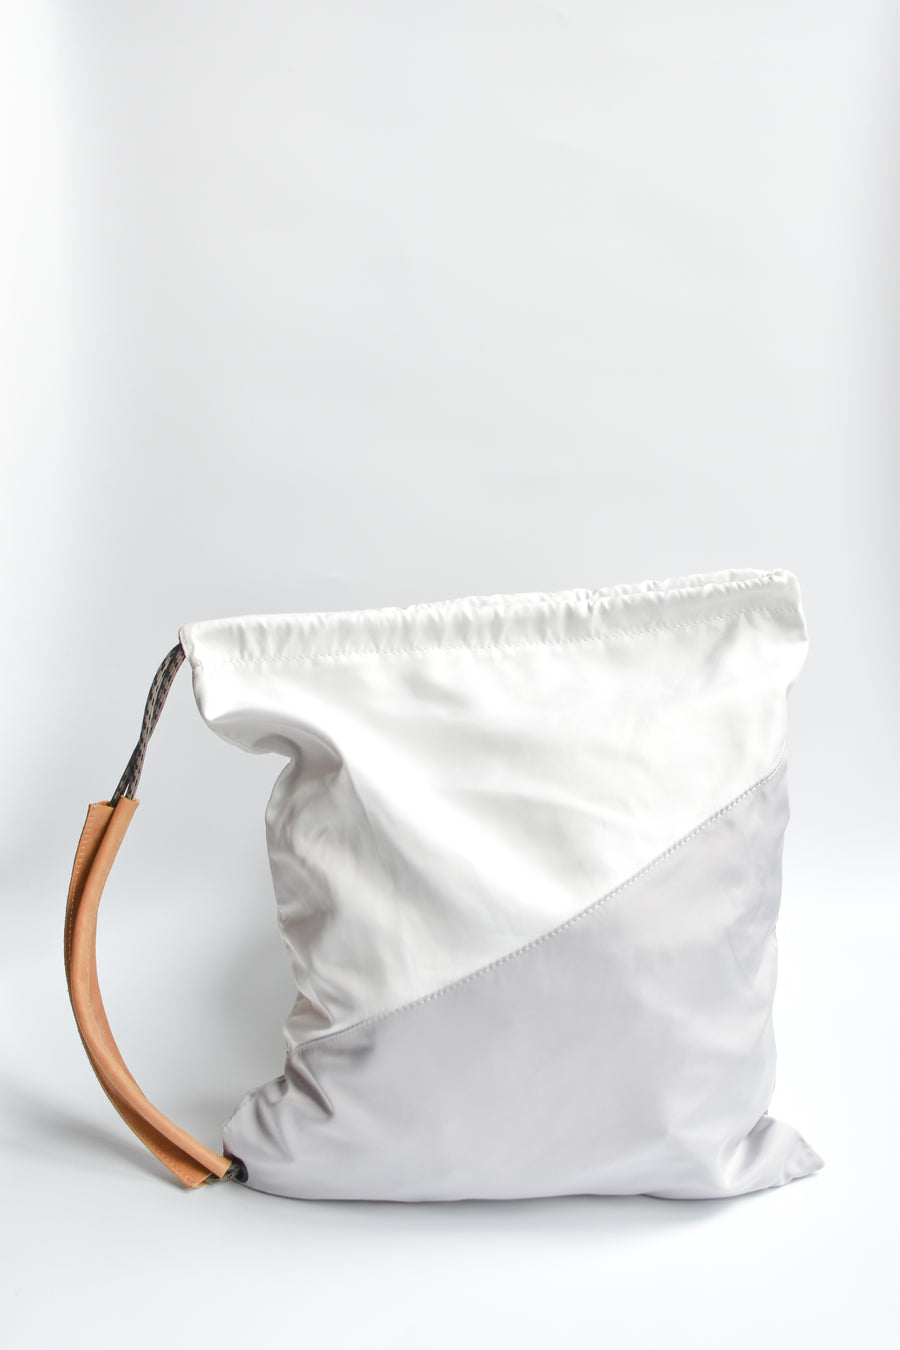 Sporty nylon sling bag in white and gray with natural leather straps.